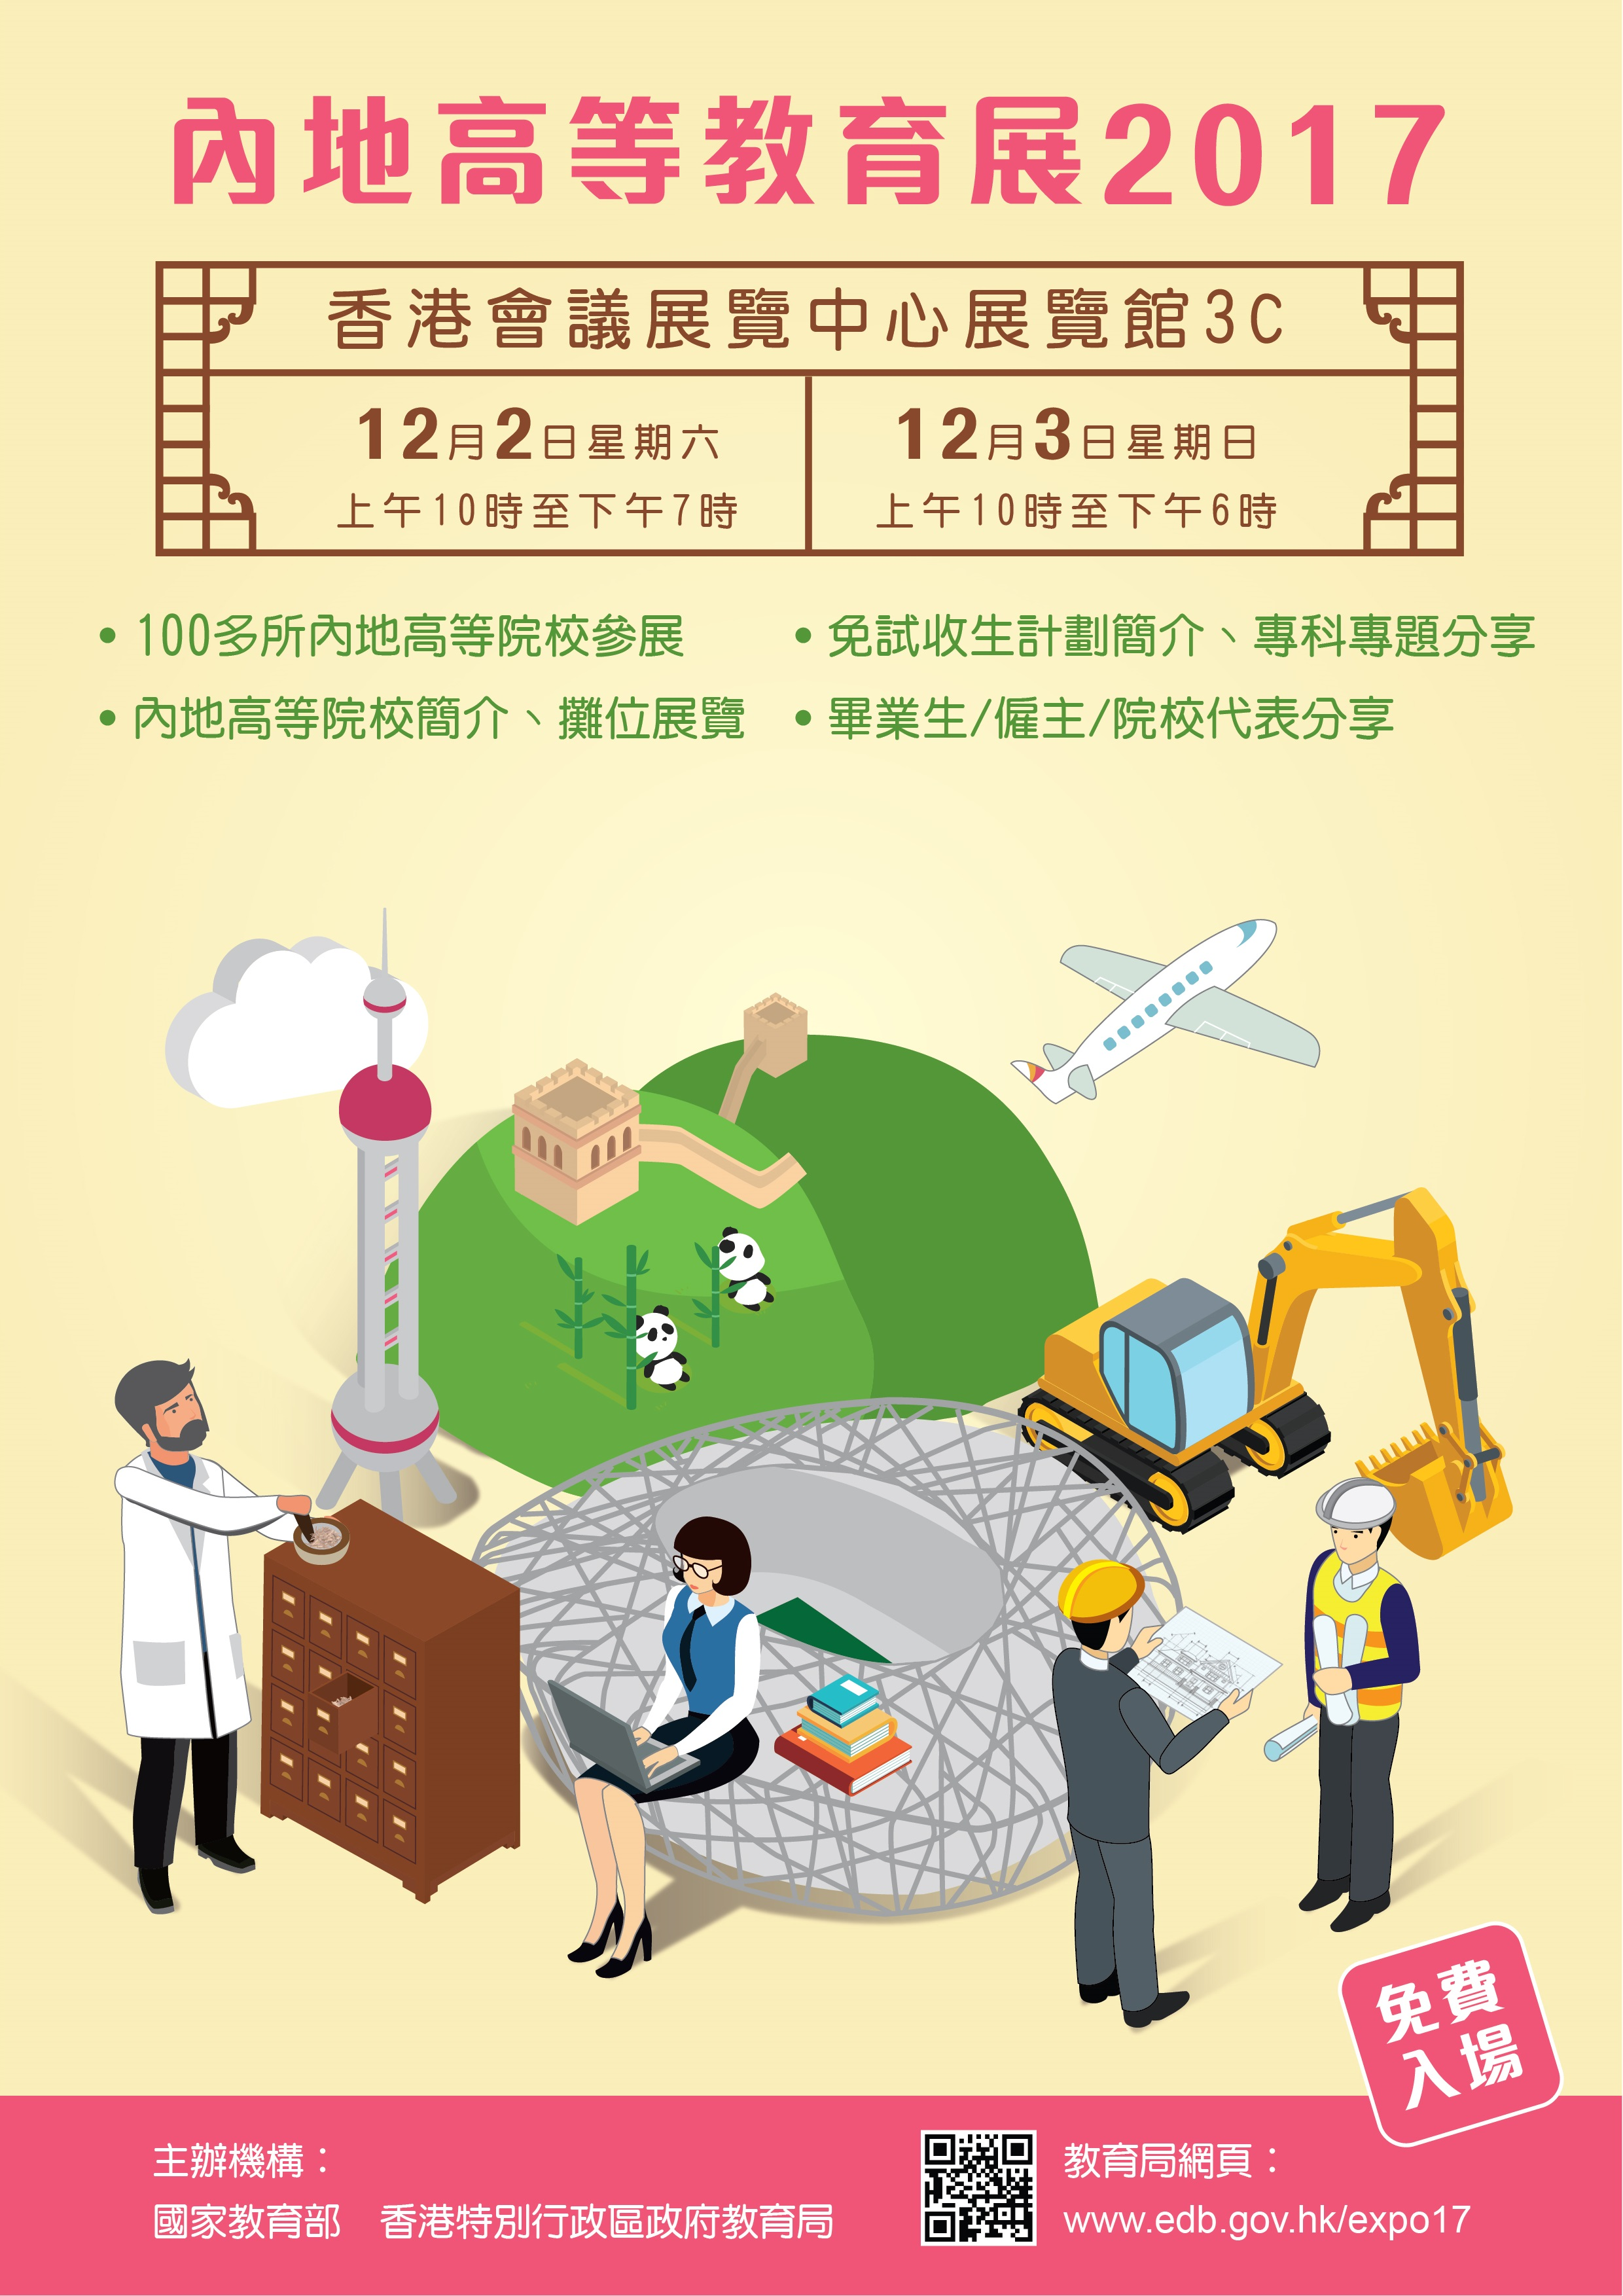 Event Poster Chinese Version Only